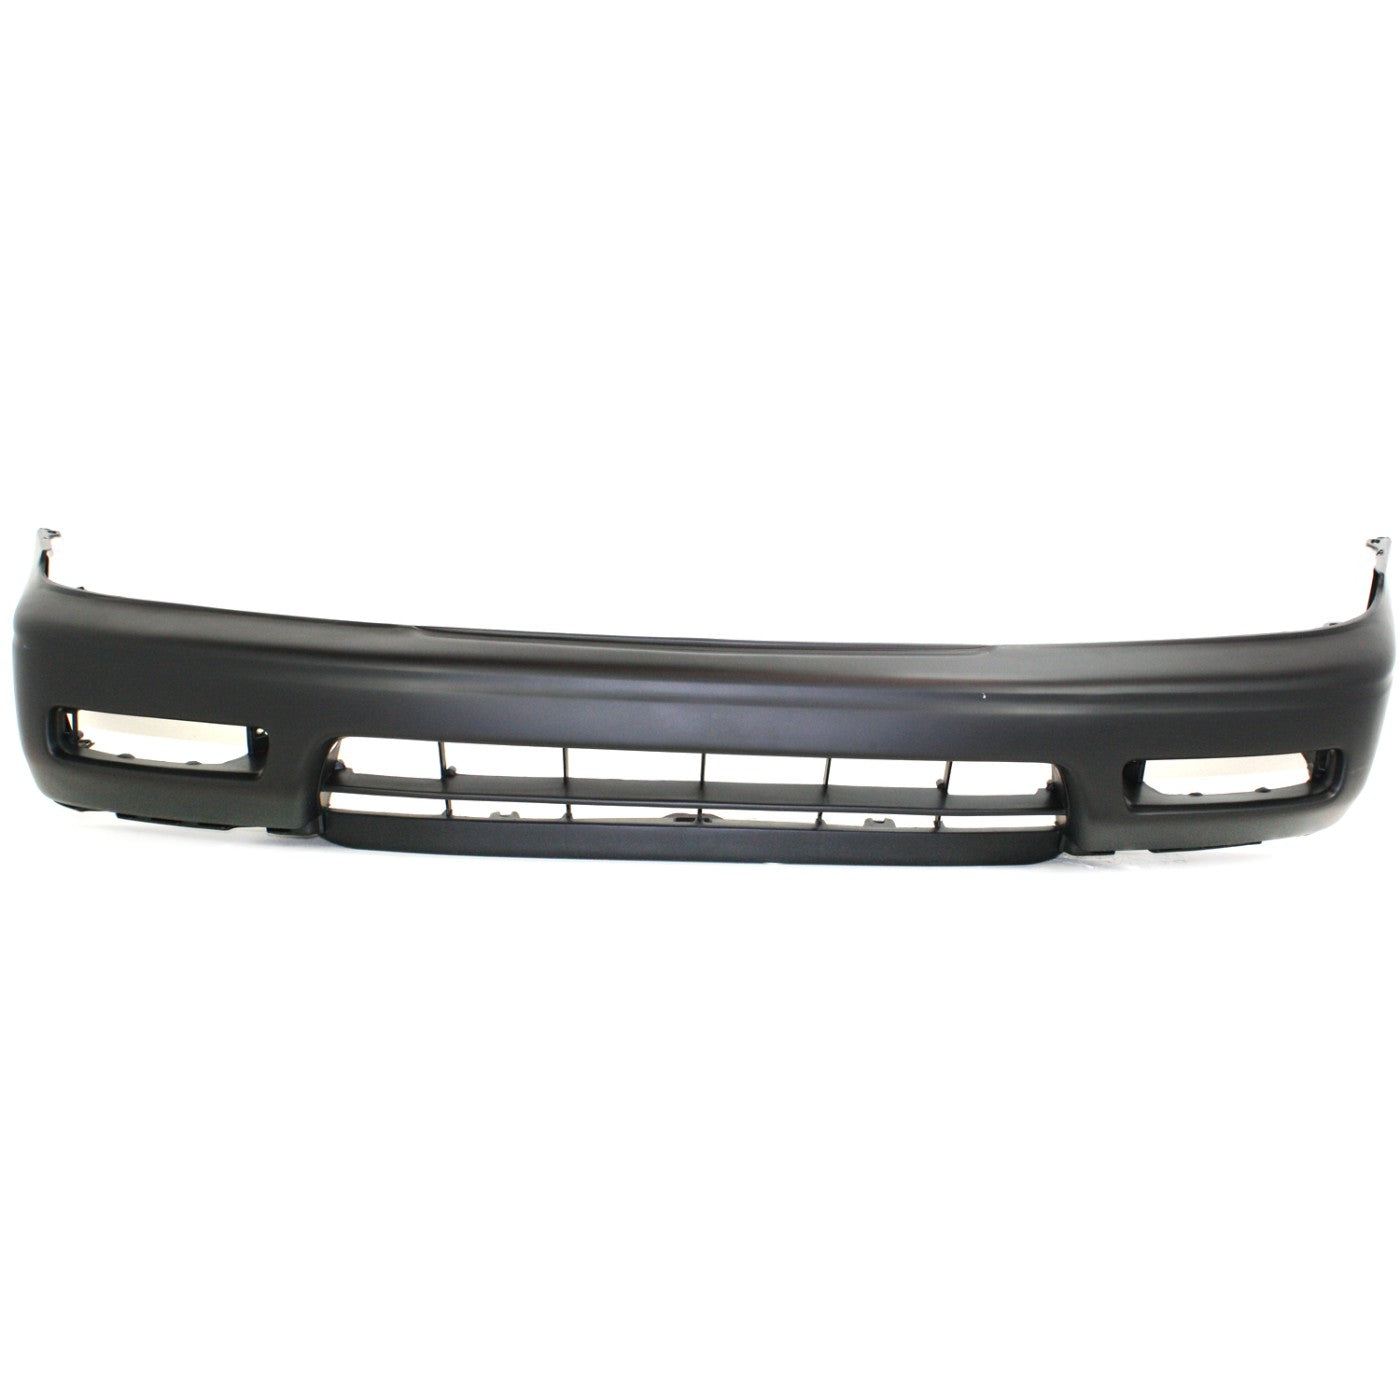 1994-1995 Honda Accord Sedan Front Bumper Painted